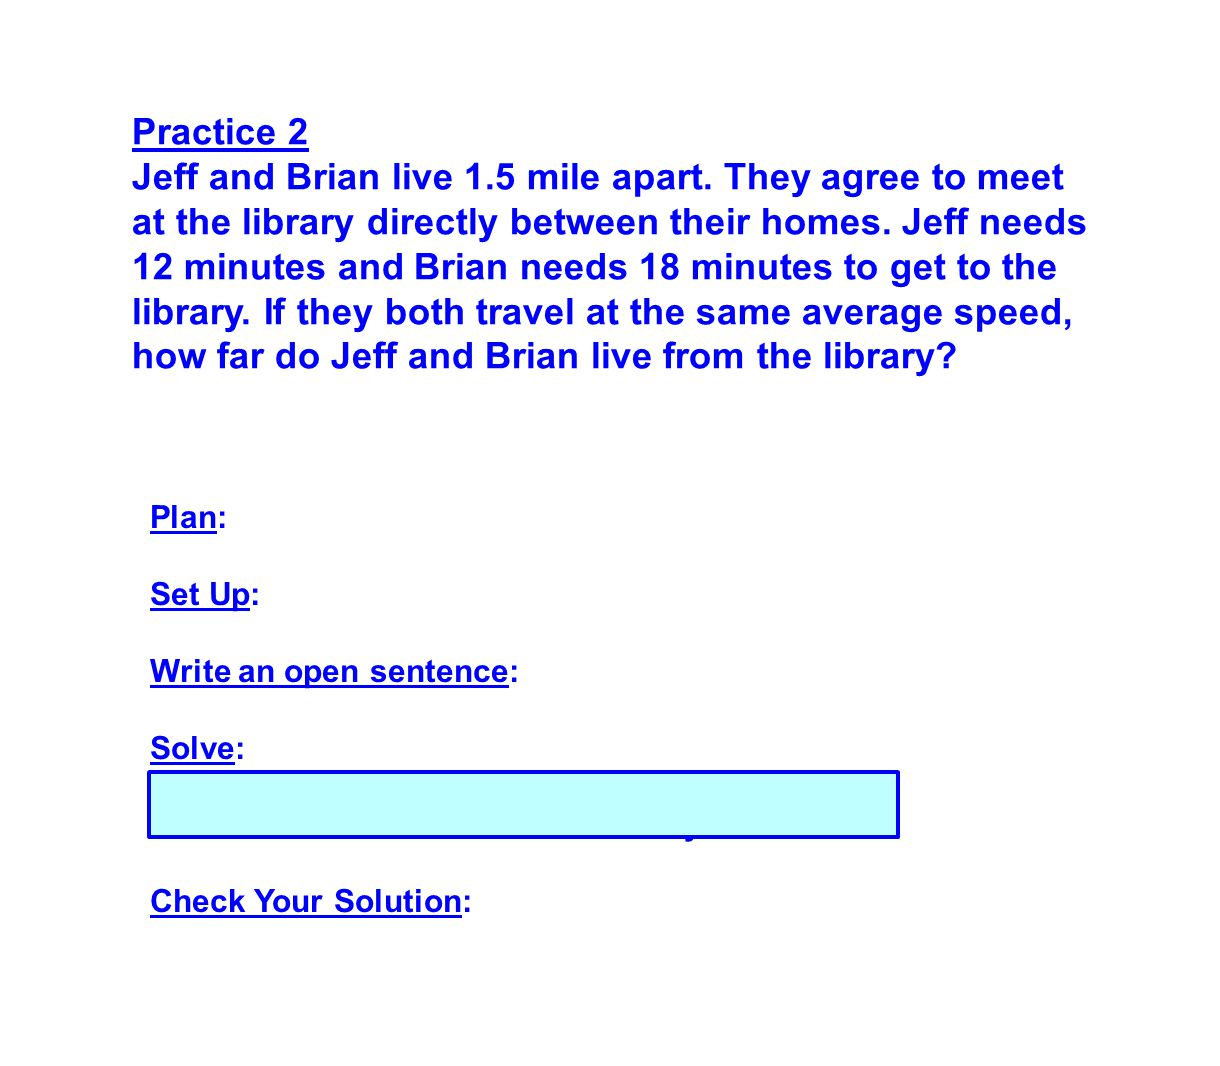 Practice 2 Jeff and Brian live 1.5 mile apart. They agree to meet at the library directly between their homes. Jeff needs 12 minutes and Brian needs 1